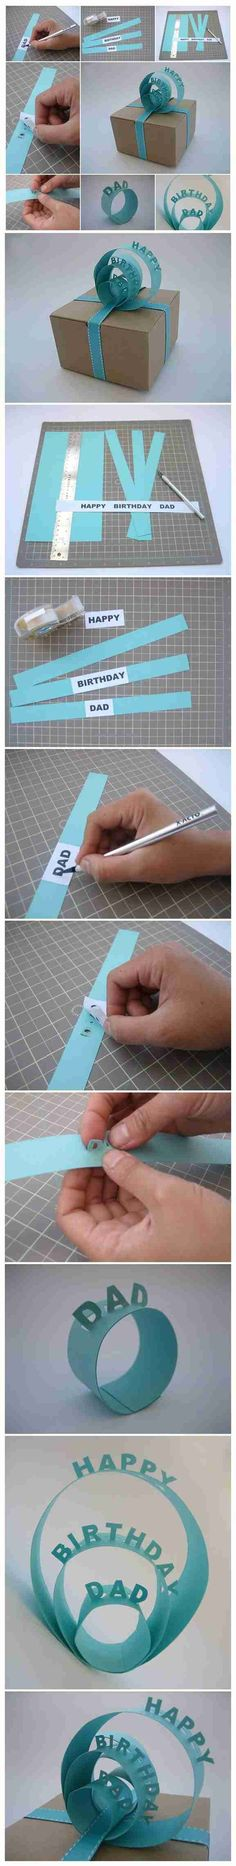 How to Make Sign Gift Topper to Decorate a Gift - - Presents wrapped in a creative way are so lovely! Here is a cute idea to Make Sign Gift Topper to decorate a gift in a pretty way. Creative Gift Wrapping, Wrapping Ideas, Creative Gifts, Christmas Gift Wrapping, Diy Christmas Gifts, Easy Gifts, Cute Gifts, Papier Diy, Wie Macht Man